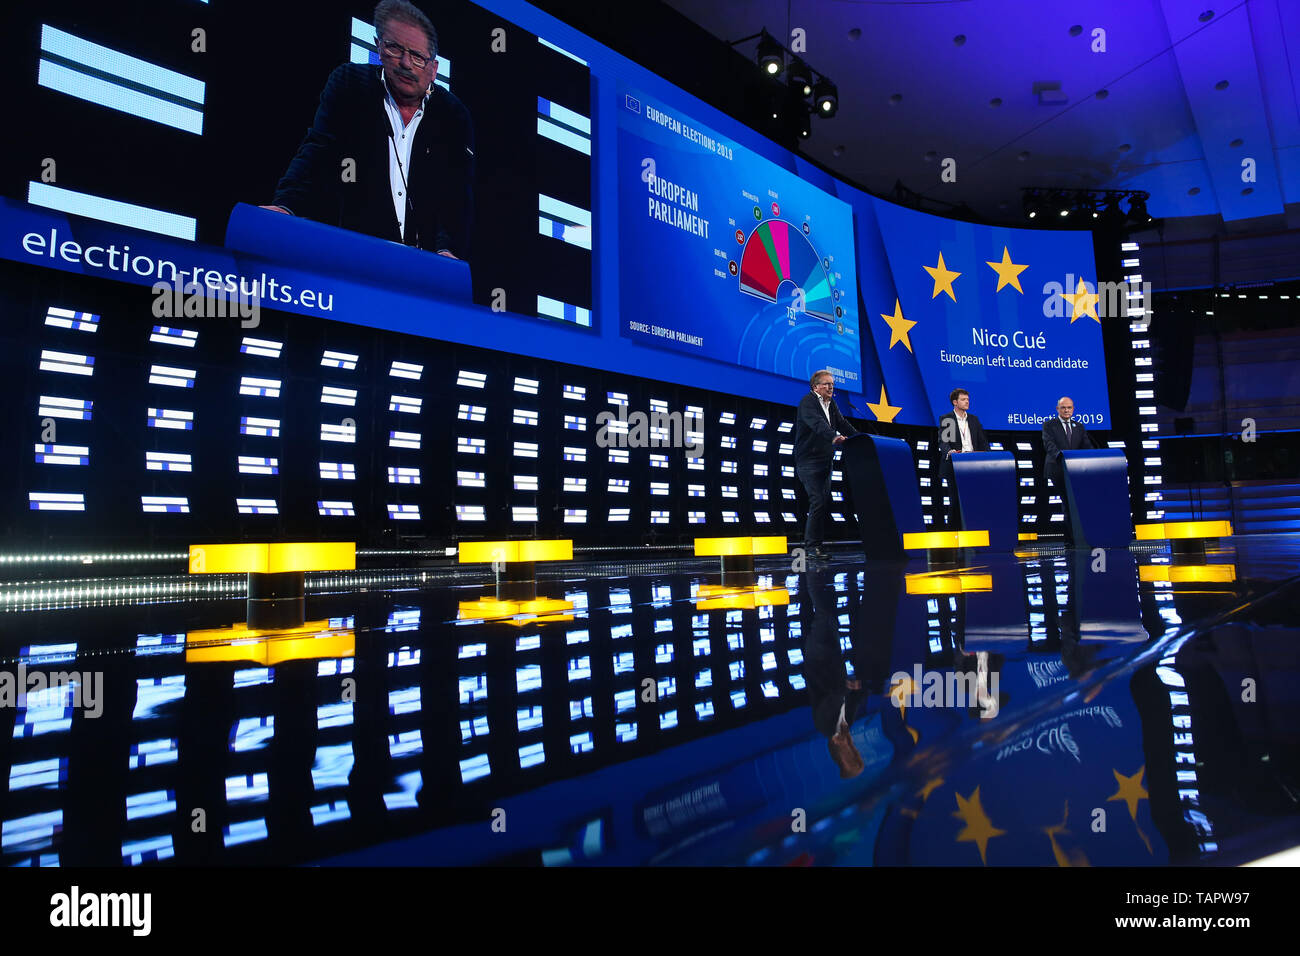 Brussels, Belgium. 27th May 2019. European Left lead candidate to the Presidency of the European Commission Nico Cue (1st L) speaks at the European Parliament in Brussels, Belgium, May 27, 2019. Voters in Germany, Lithuania, Cyprus, Bulgaria, Greece and Italy cast their ballots on Sunday in elections to the European Parliament (EP). Credit: Xinhua/Alamy Live News - Stock Image